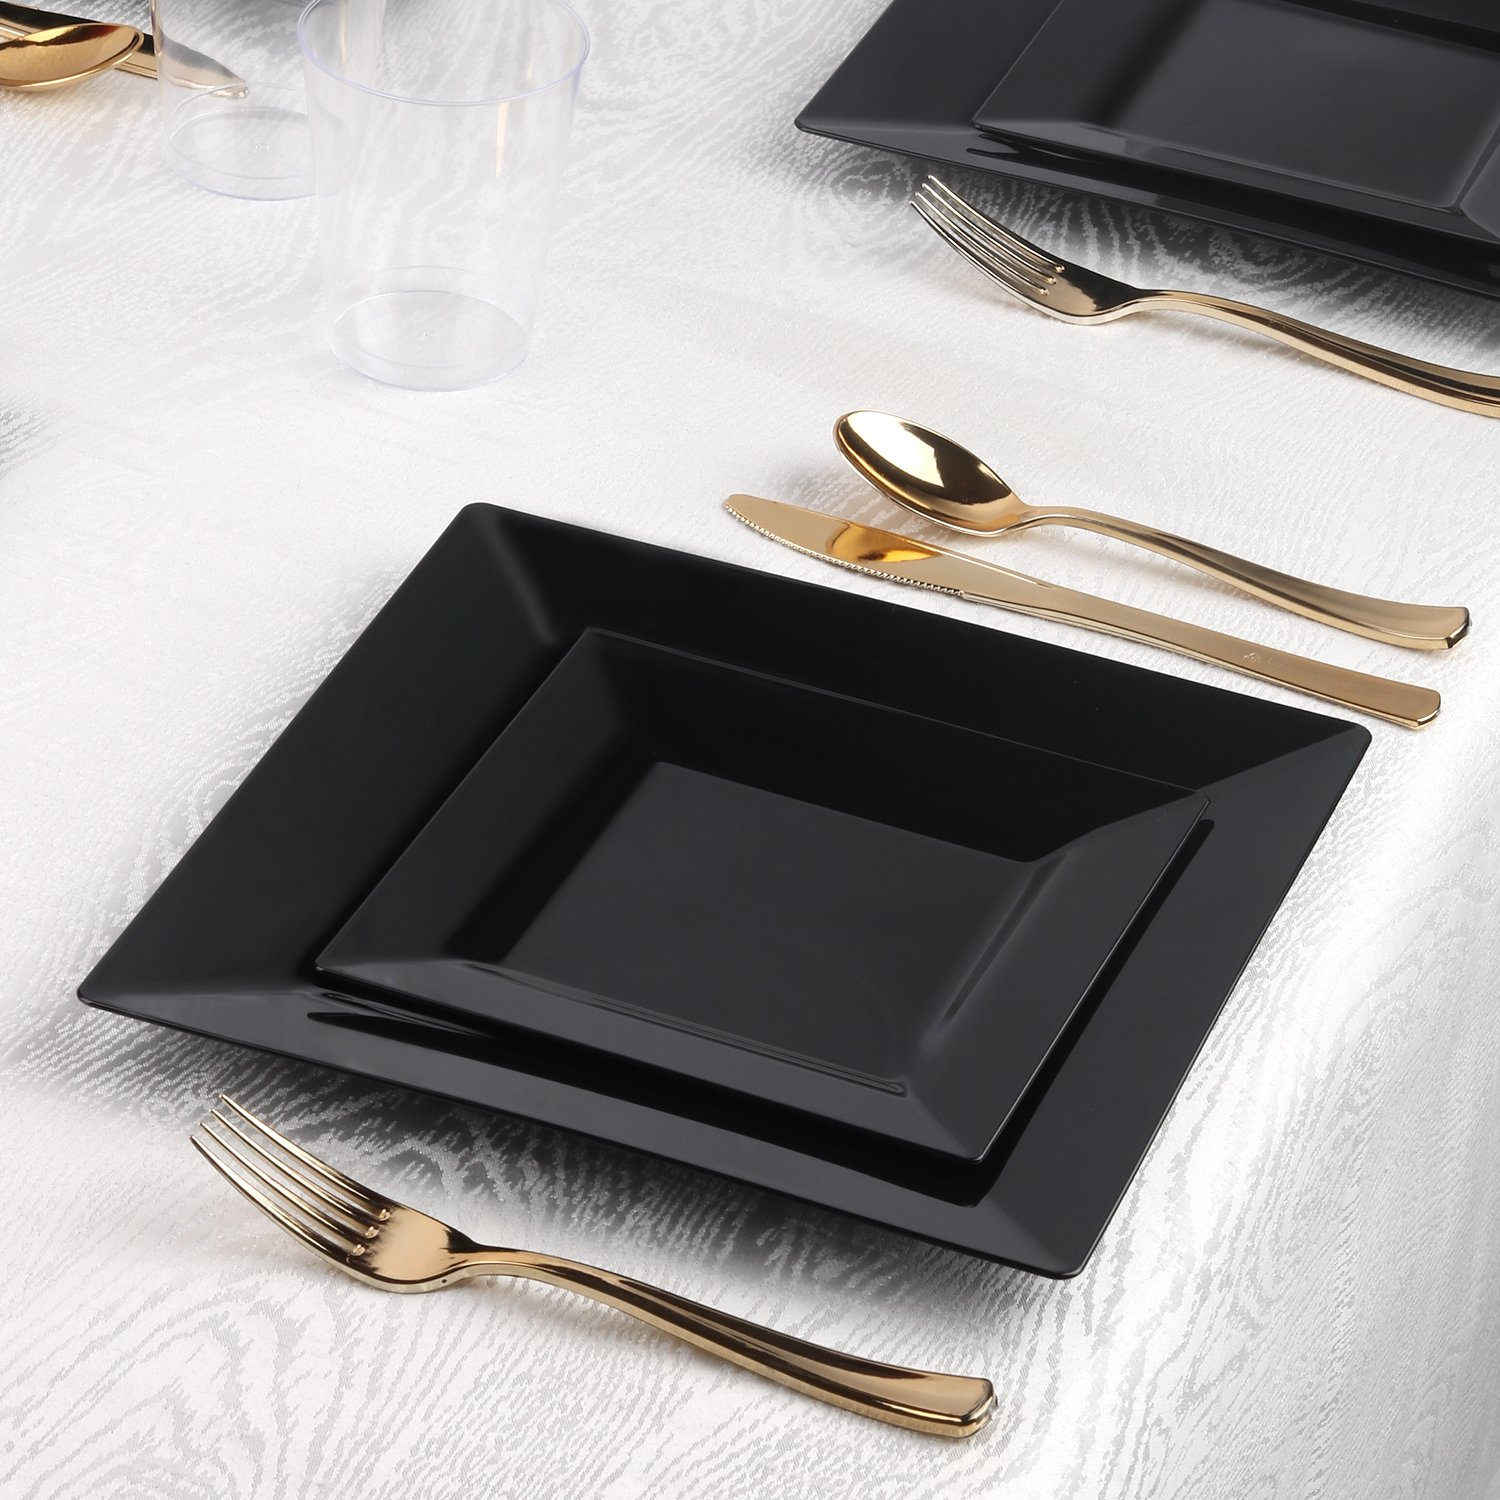 Kaya Collection - Square Black Disposable Plastic Dinnerware Party Package - 60 Person Package - Includes Dinner Plates, Salad/Dessert Plates, Gold Cutlery and Tumblers by Kaya Collection